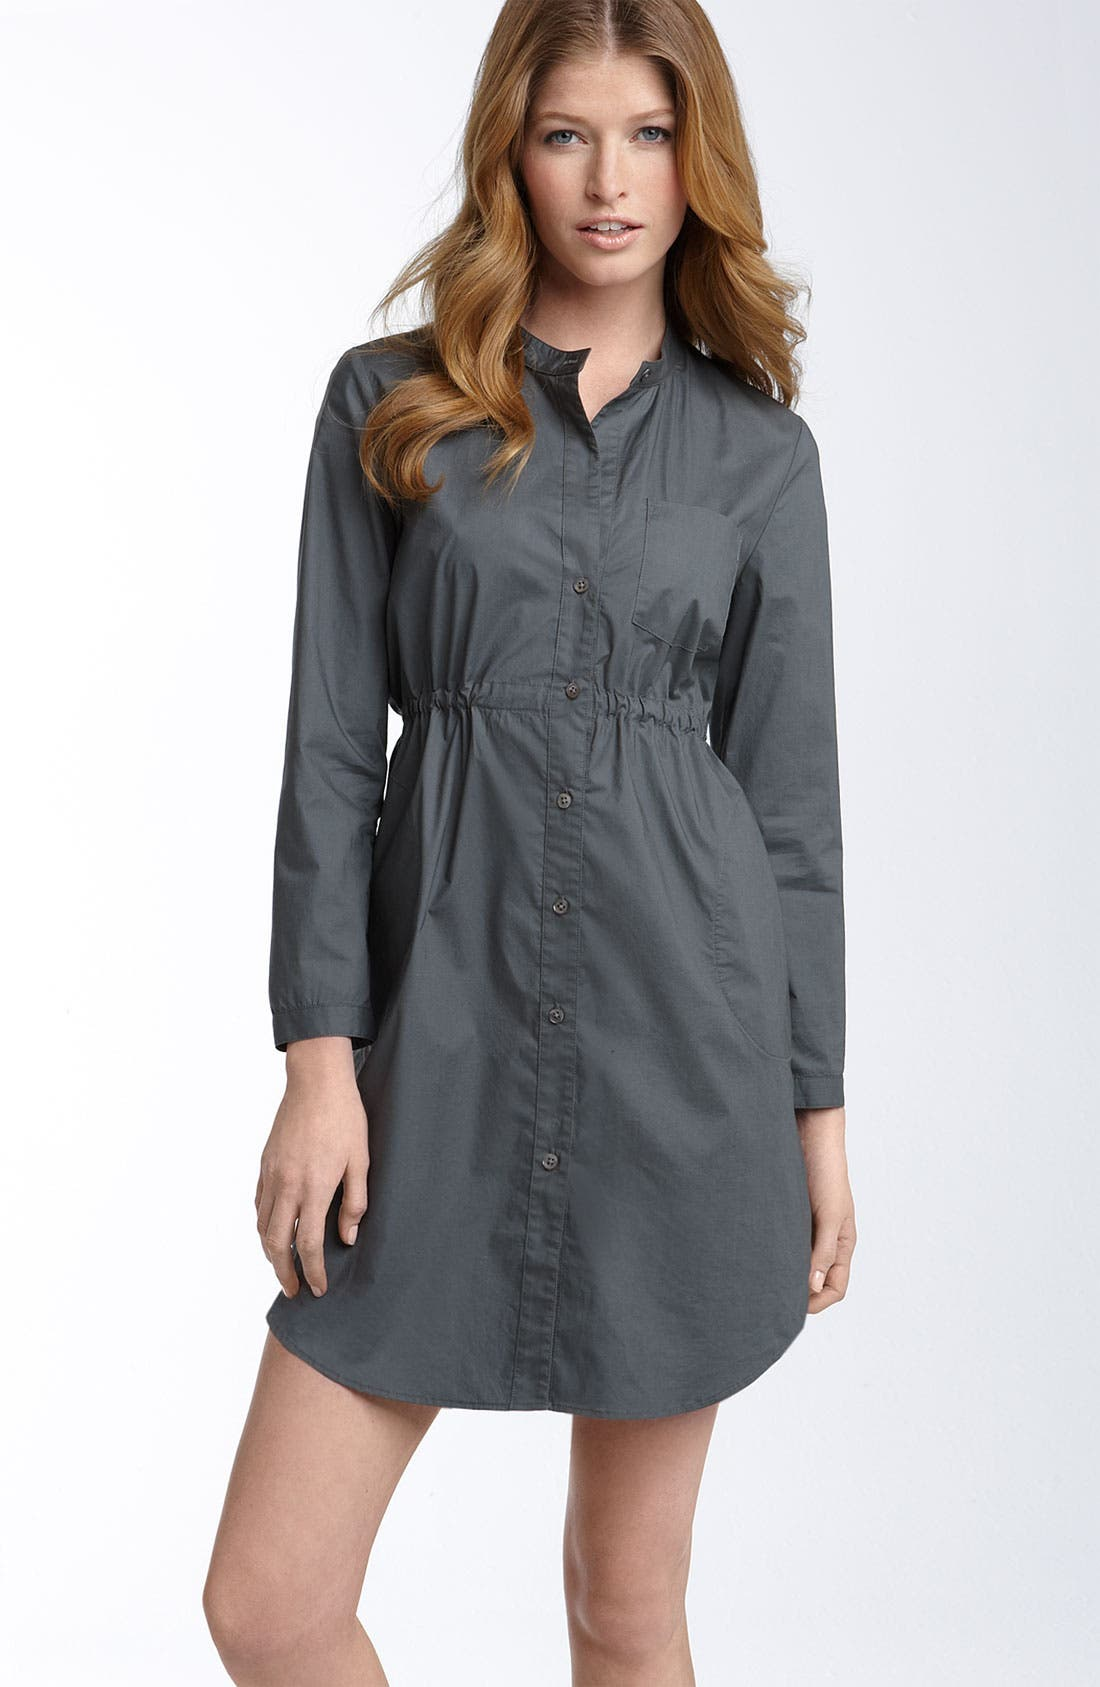 Alternate Image 1 Selected - Theory 'Isadora - Exceed' Shirtdress